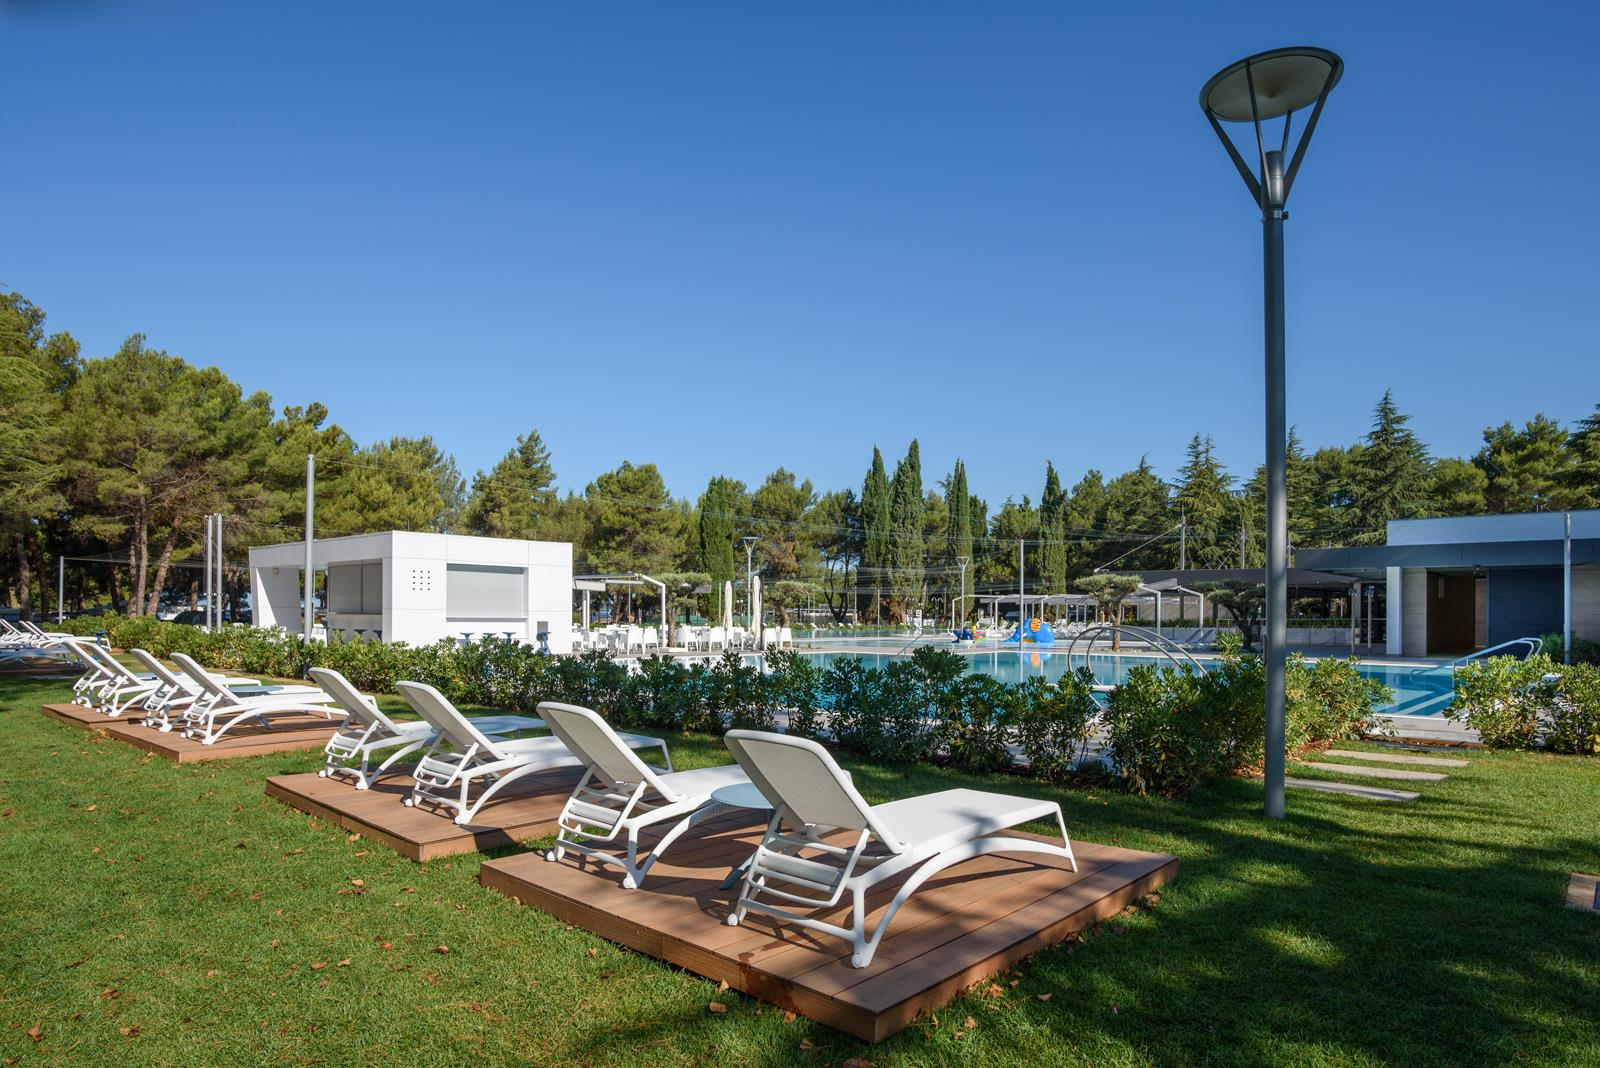 Establishment Maistra Camping Valkanela - Vrsar